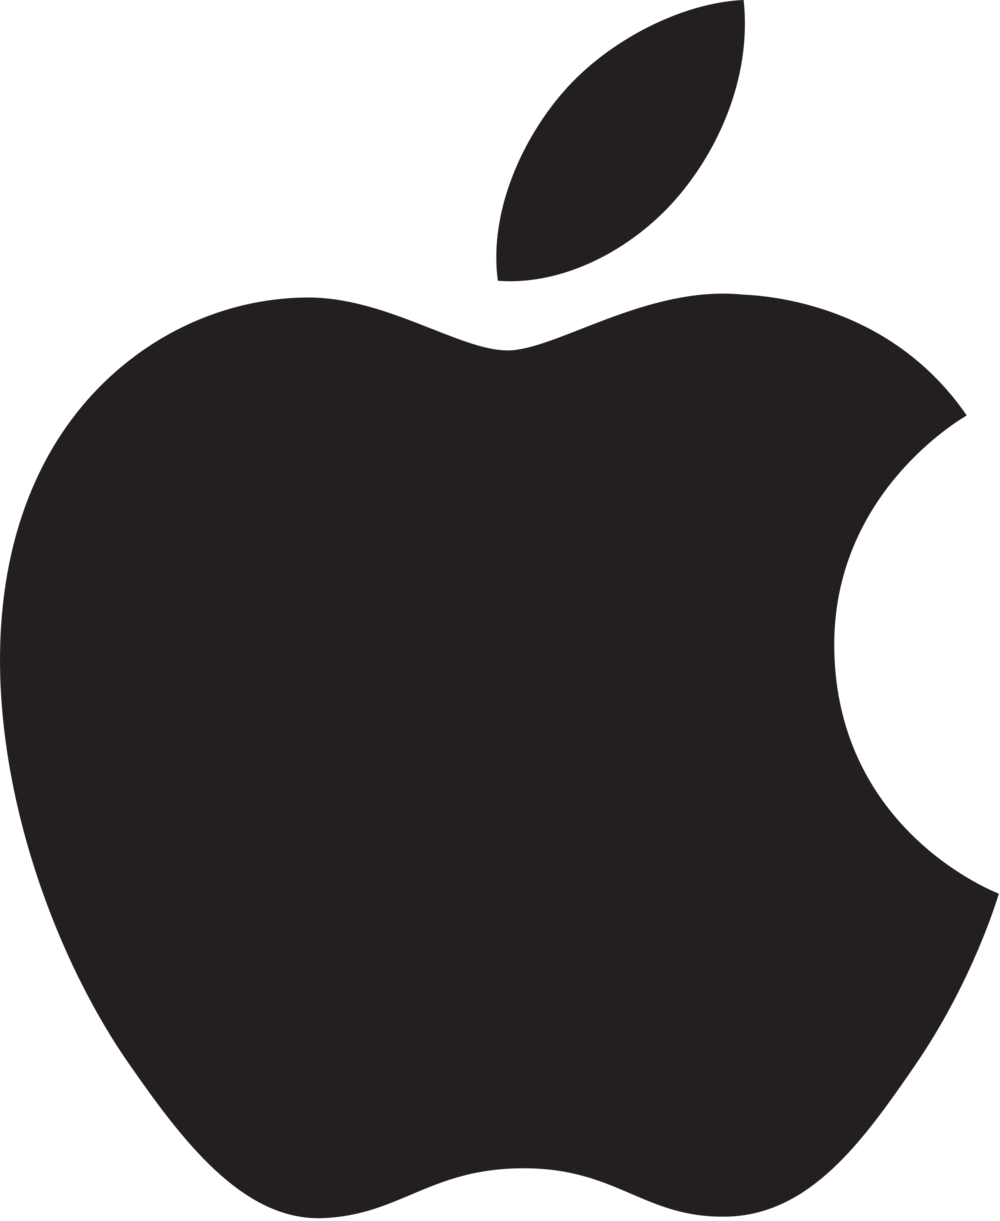 Apple_1998_Logo.png